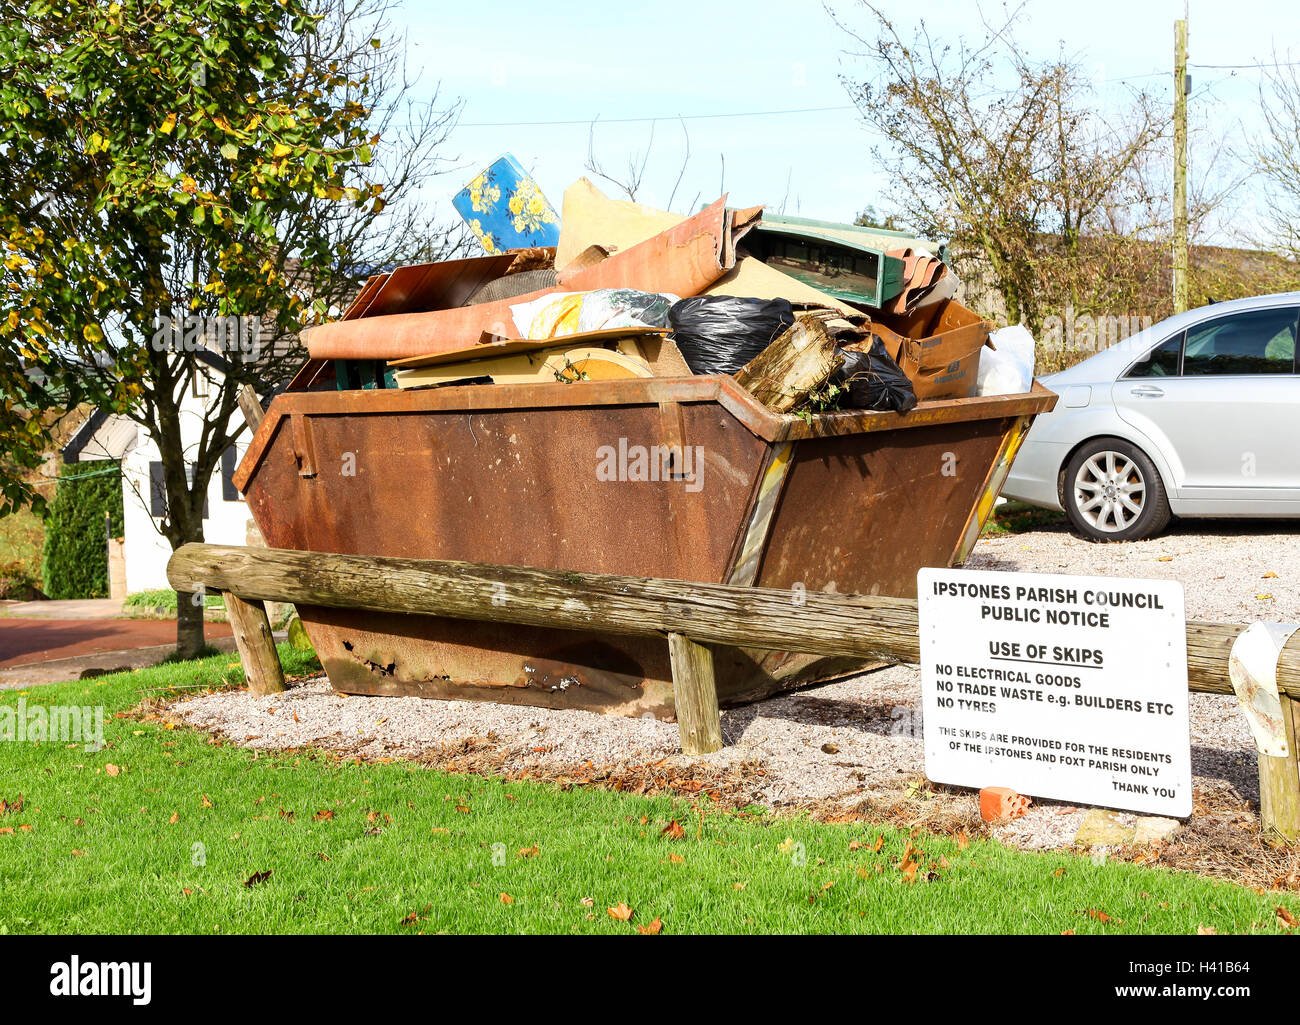 A communal skip for waste materials for villagers in the village of Foxt Staffordshire Moorlands England UK - Stock Image